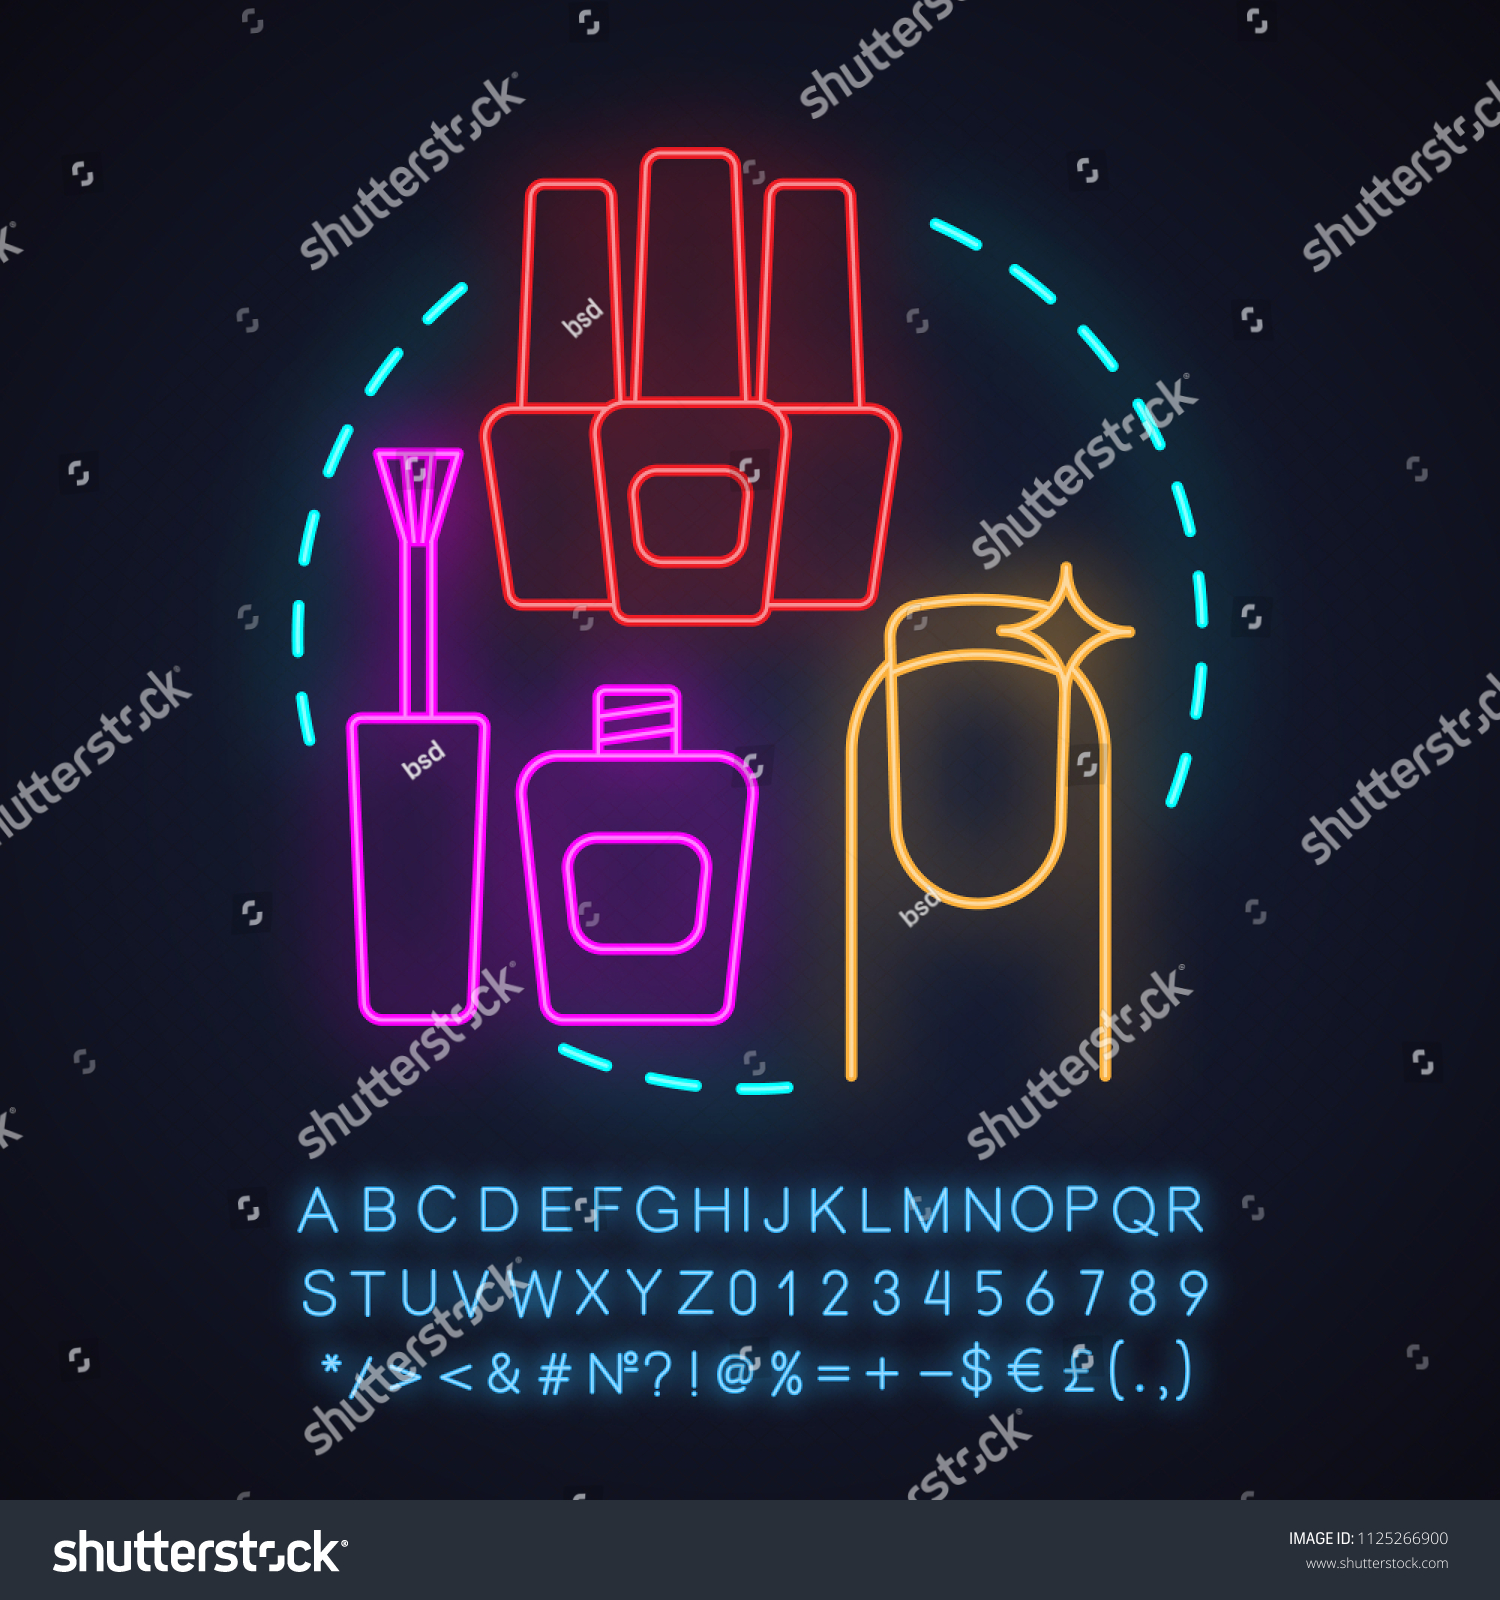 Nail Salon Neon Light Concept Icon Stock Vector (Royalty